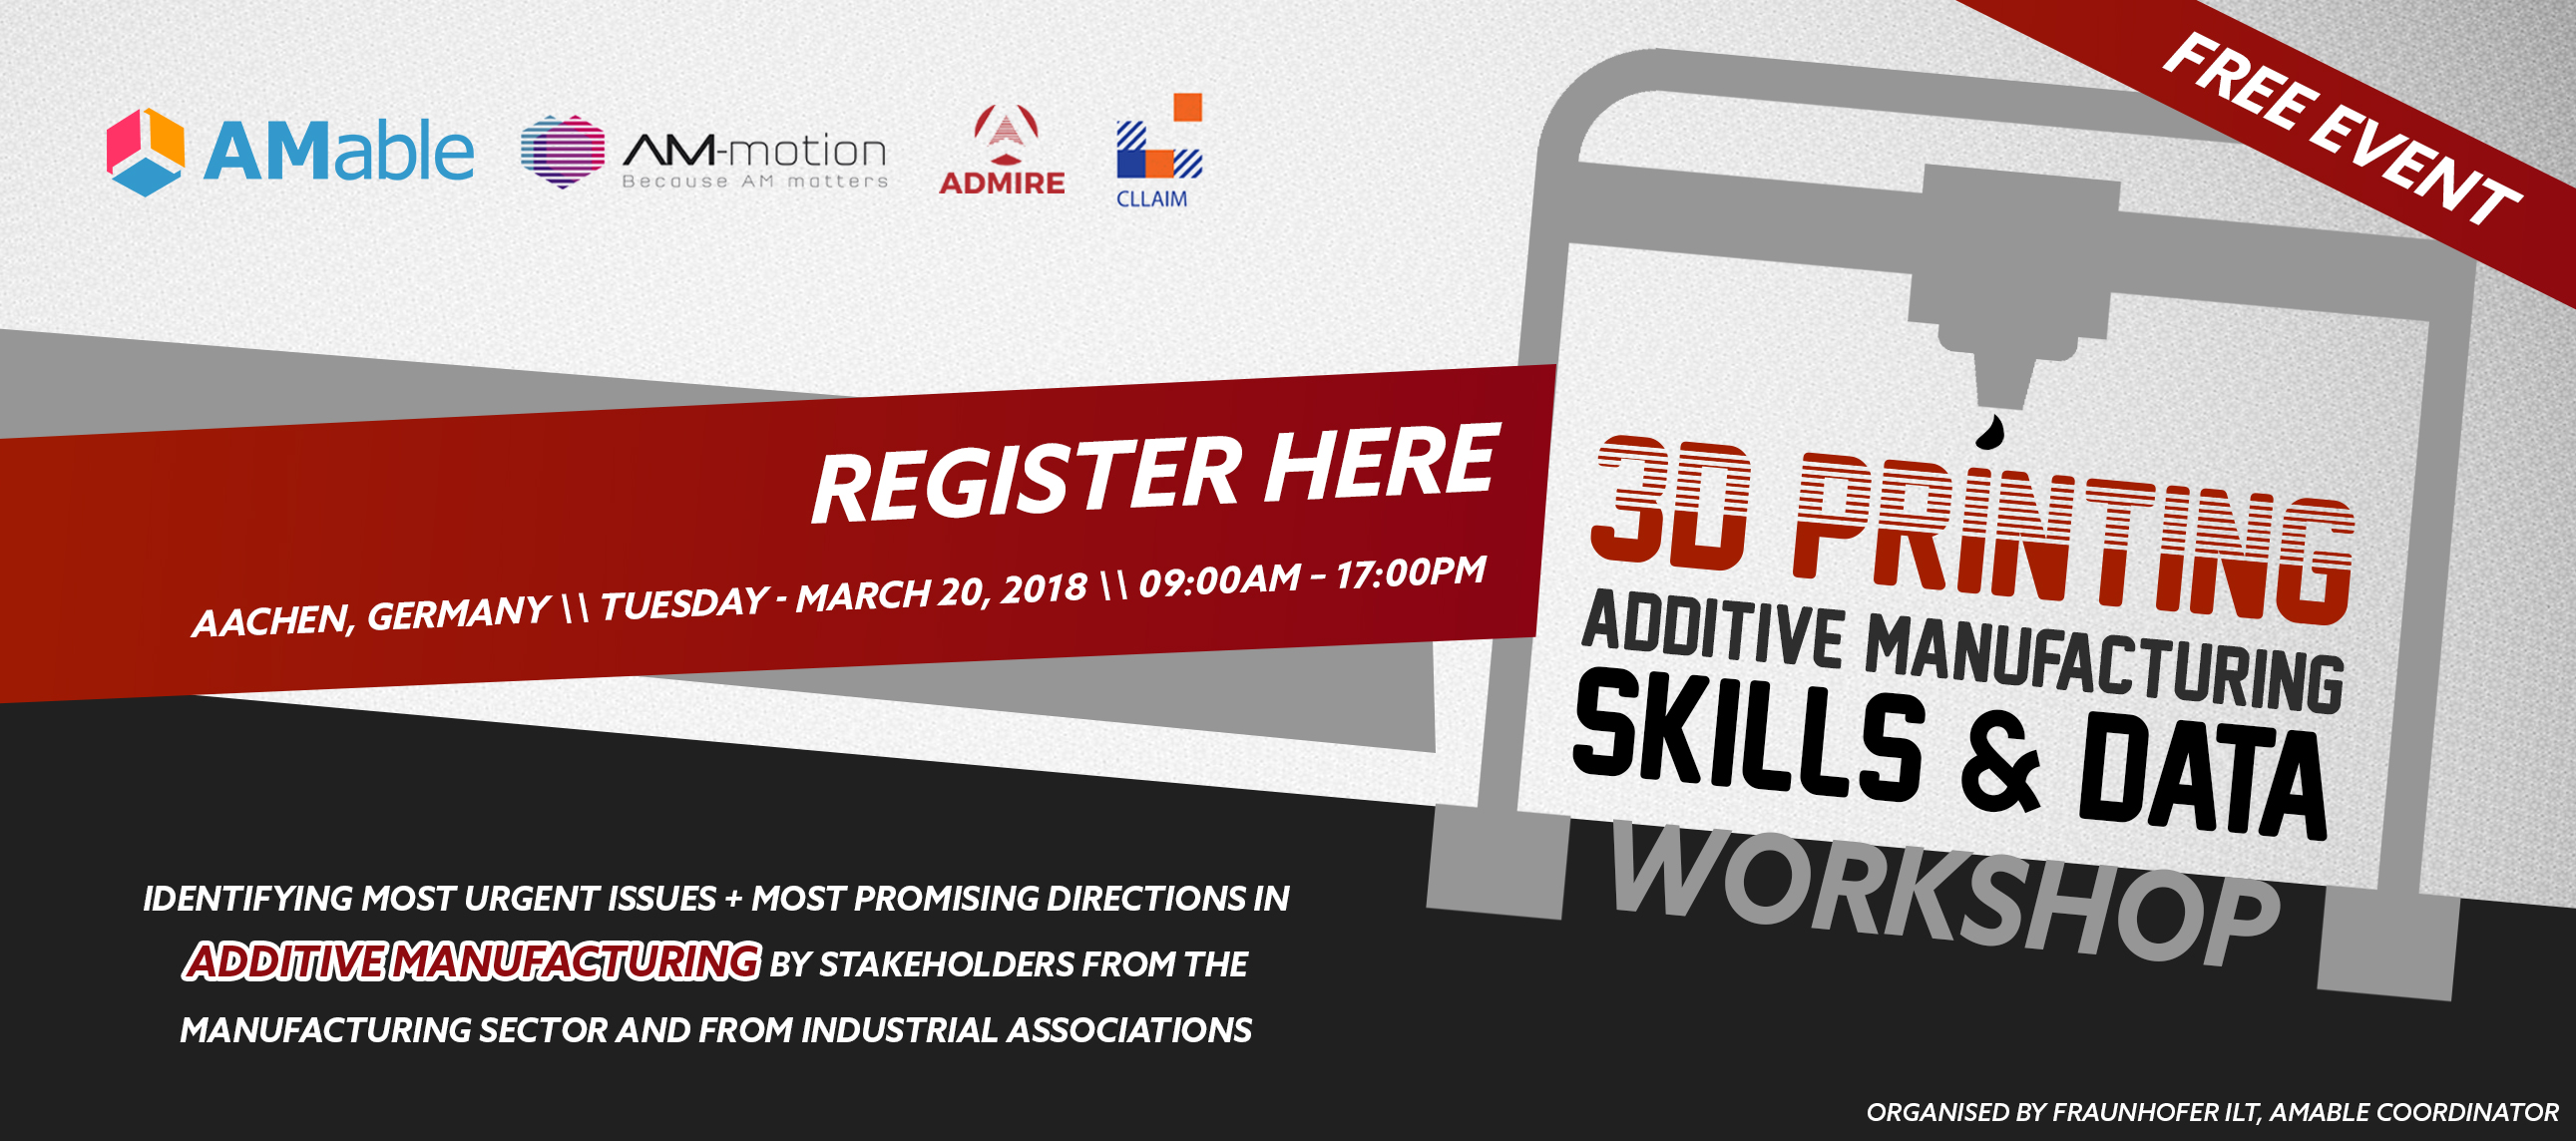 Additive Manufacturing free workshop